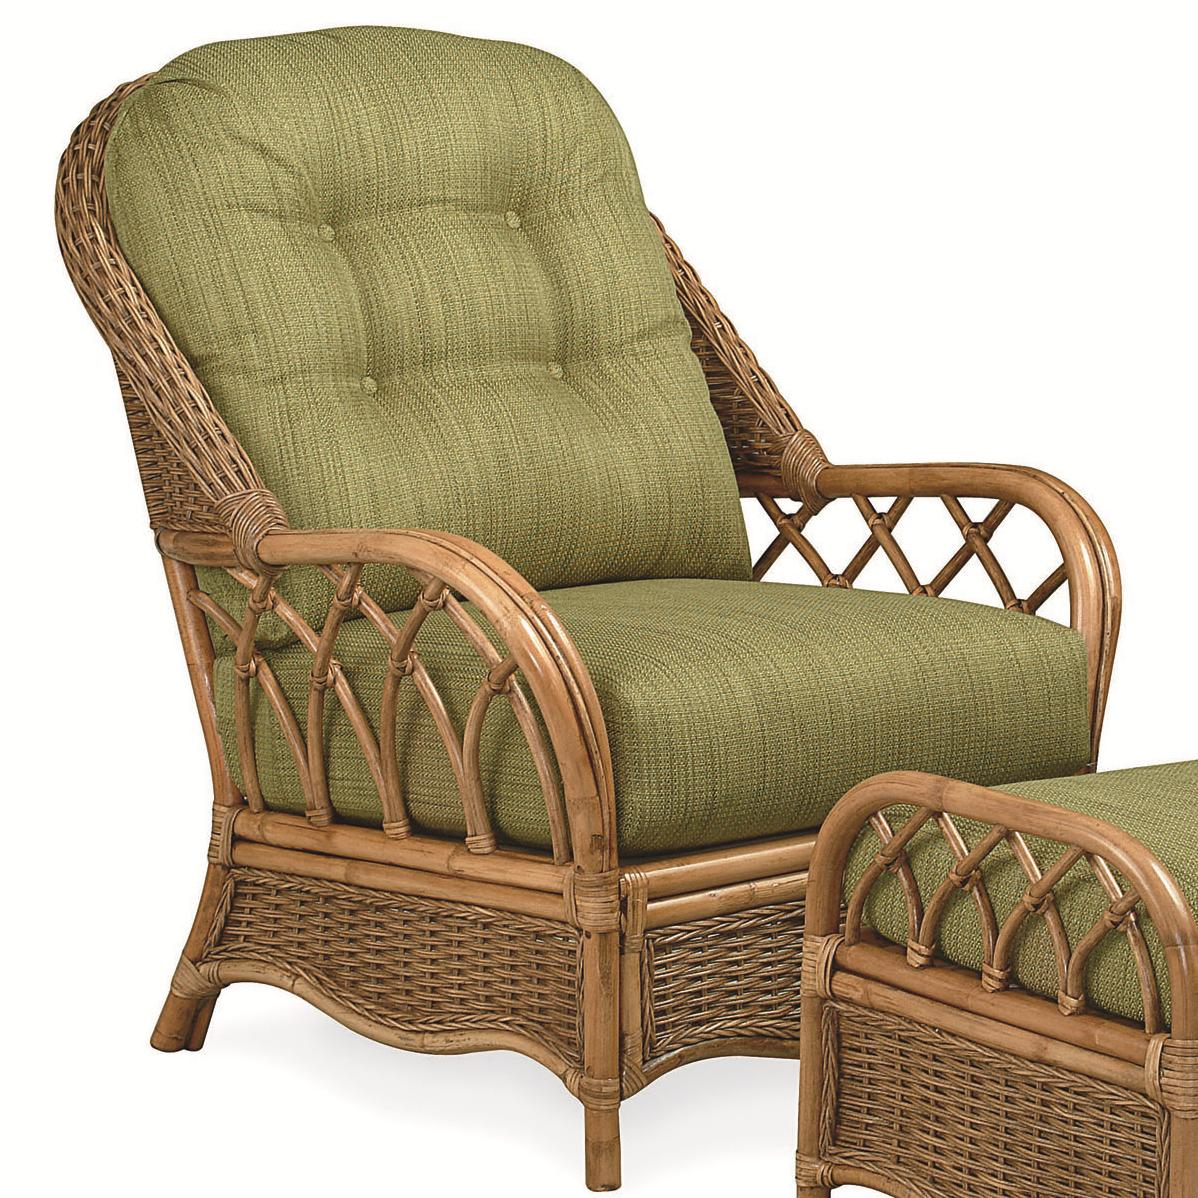 Braxton Culler Everglade Rattan Chair - Item Number: 905-01